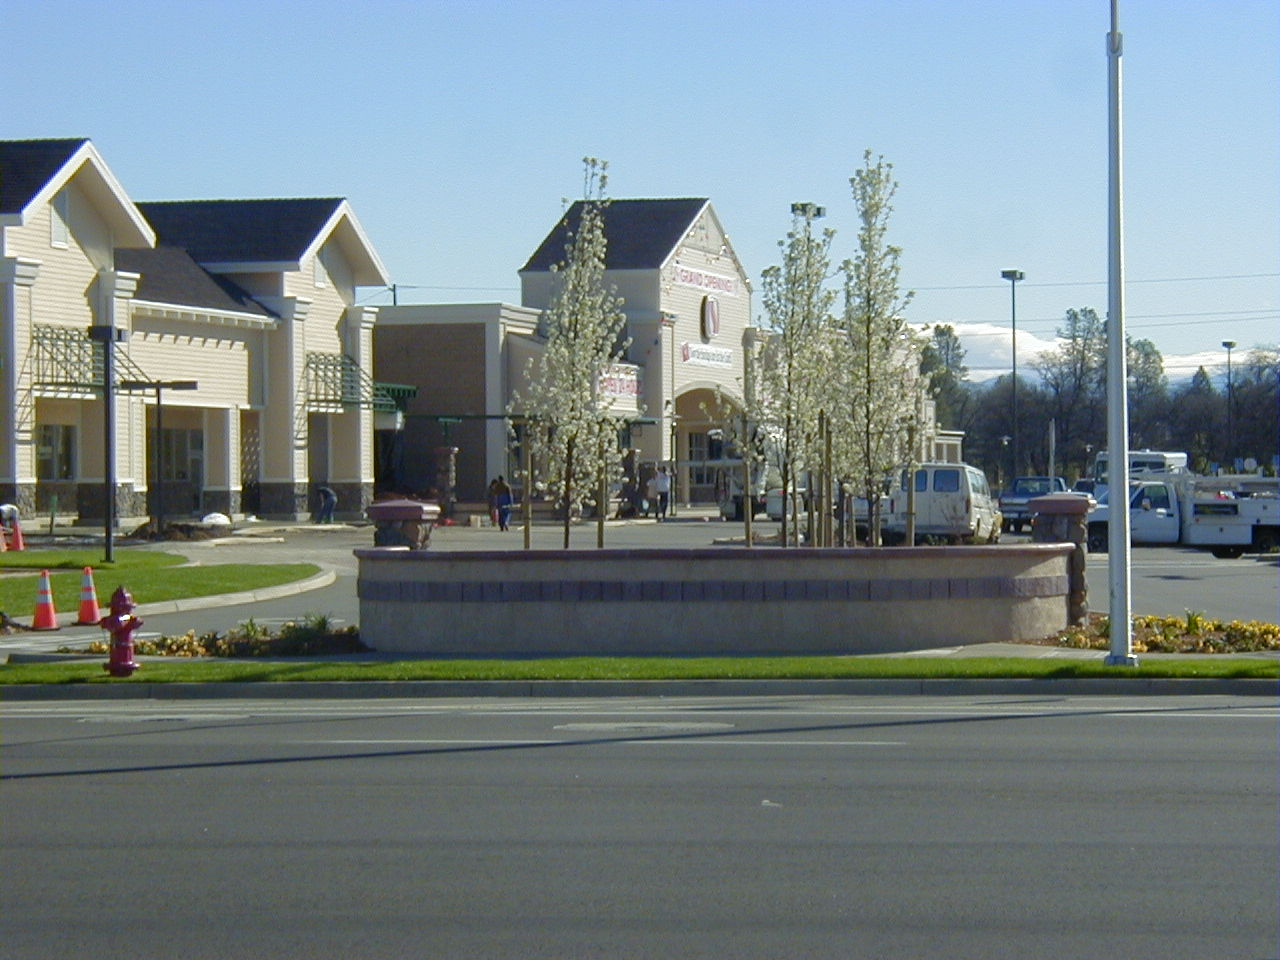 Commercial Projects - Safeway - Churn Creek